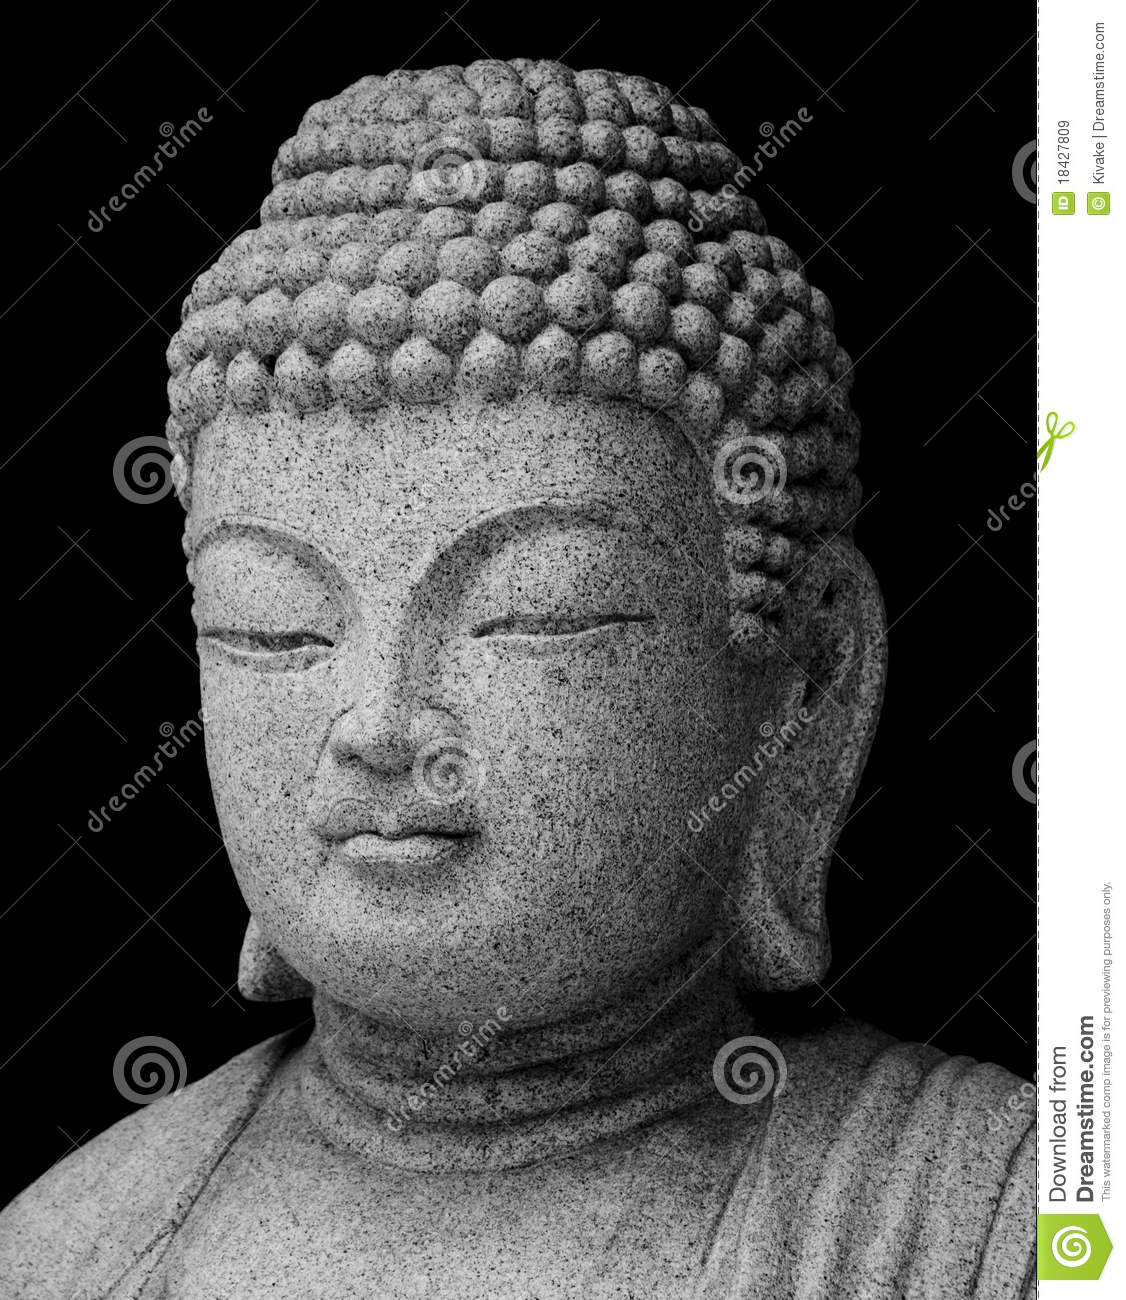 statue de bouddha en noir et blanc images libres de droits image 18427809. Black Bedroom Furniture Sets. Home Design Ideas